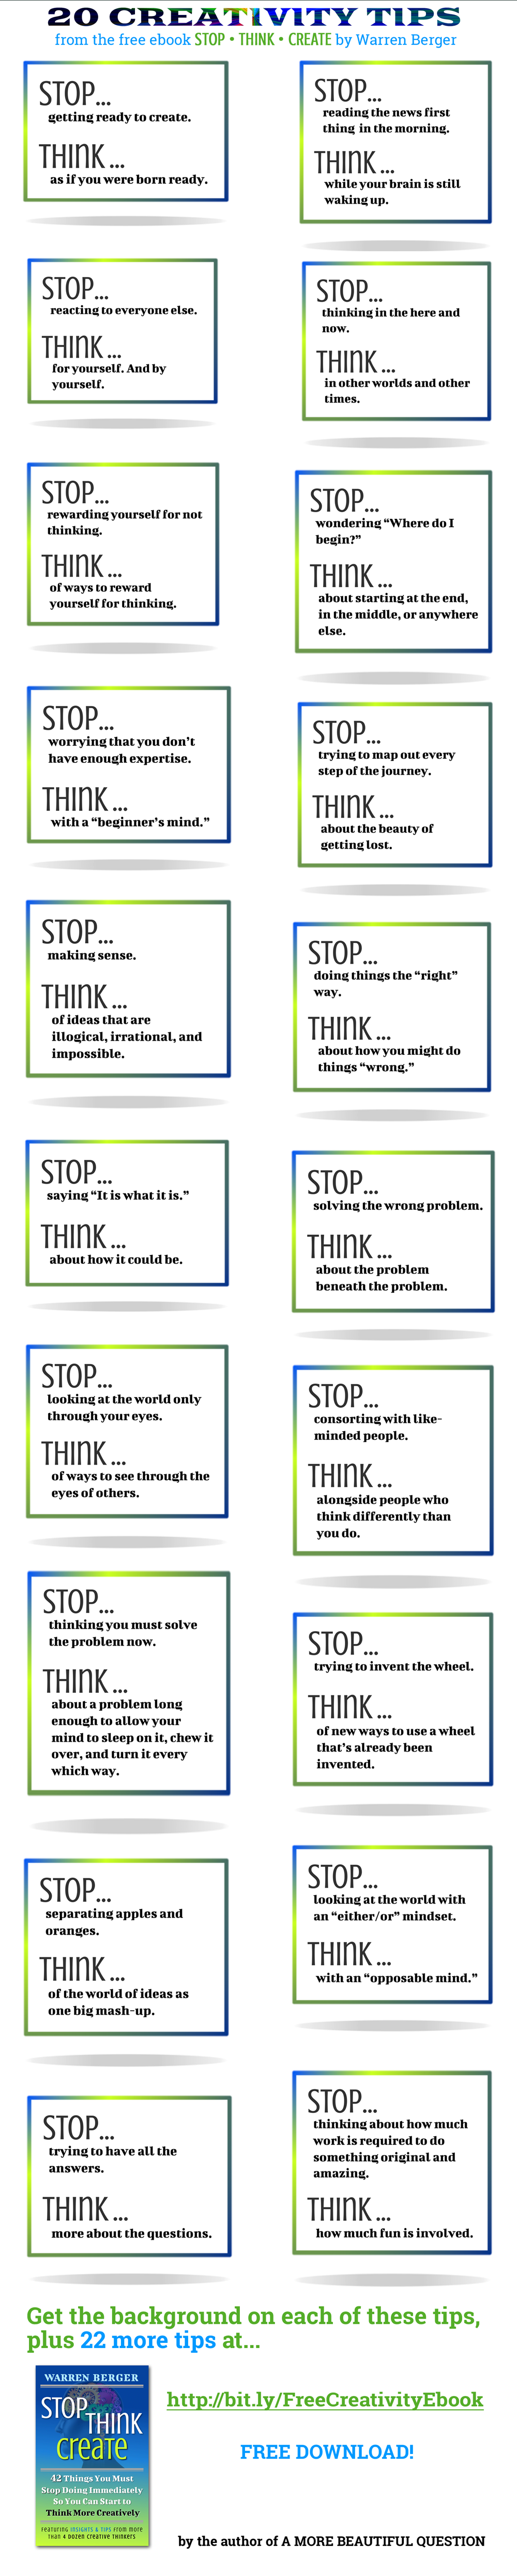 Stop Think Create Tips infographic